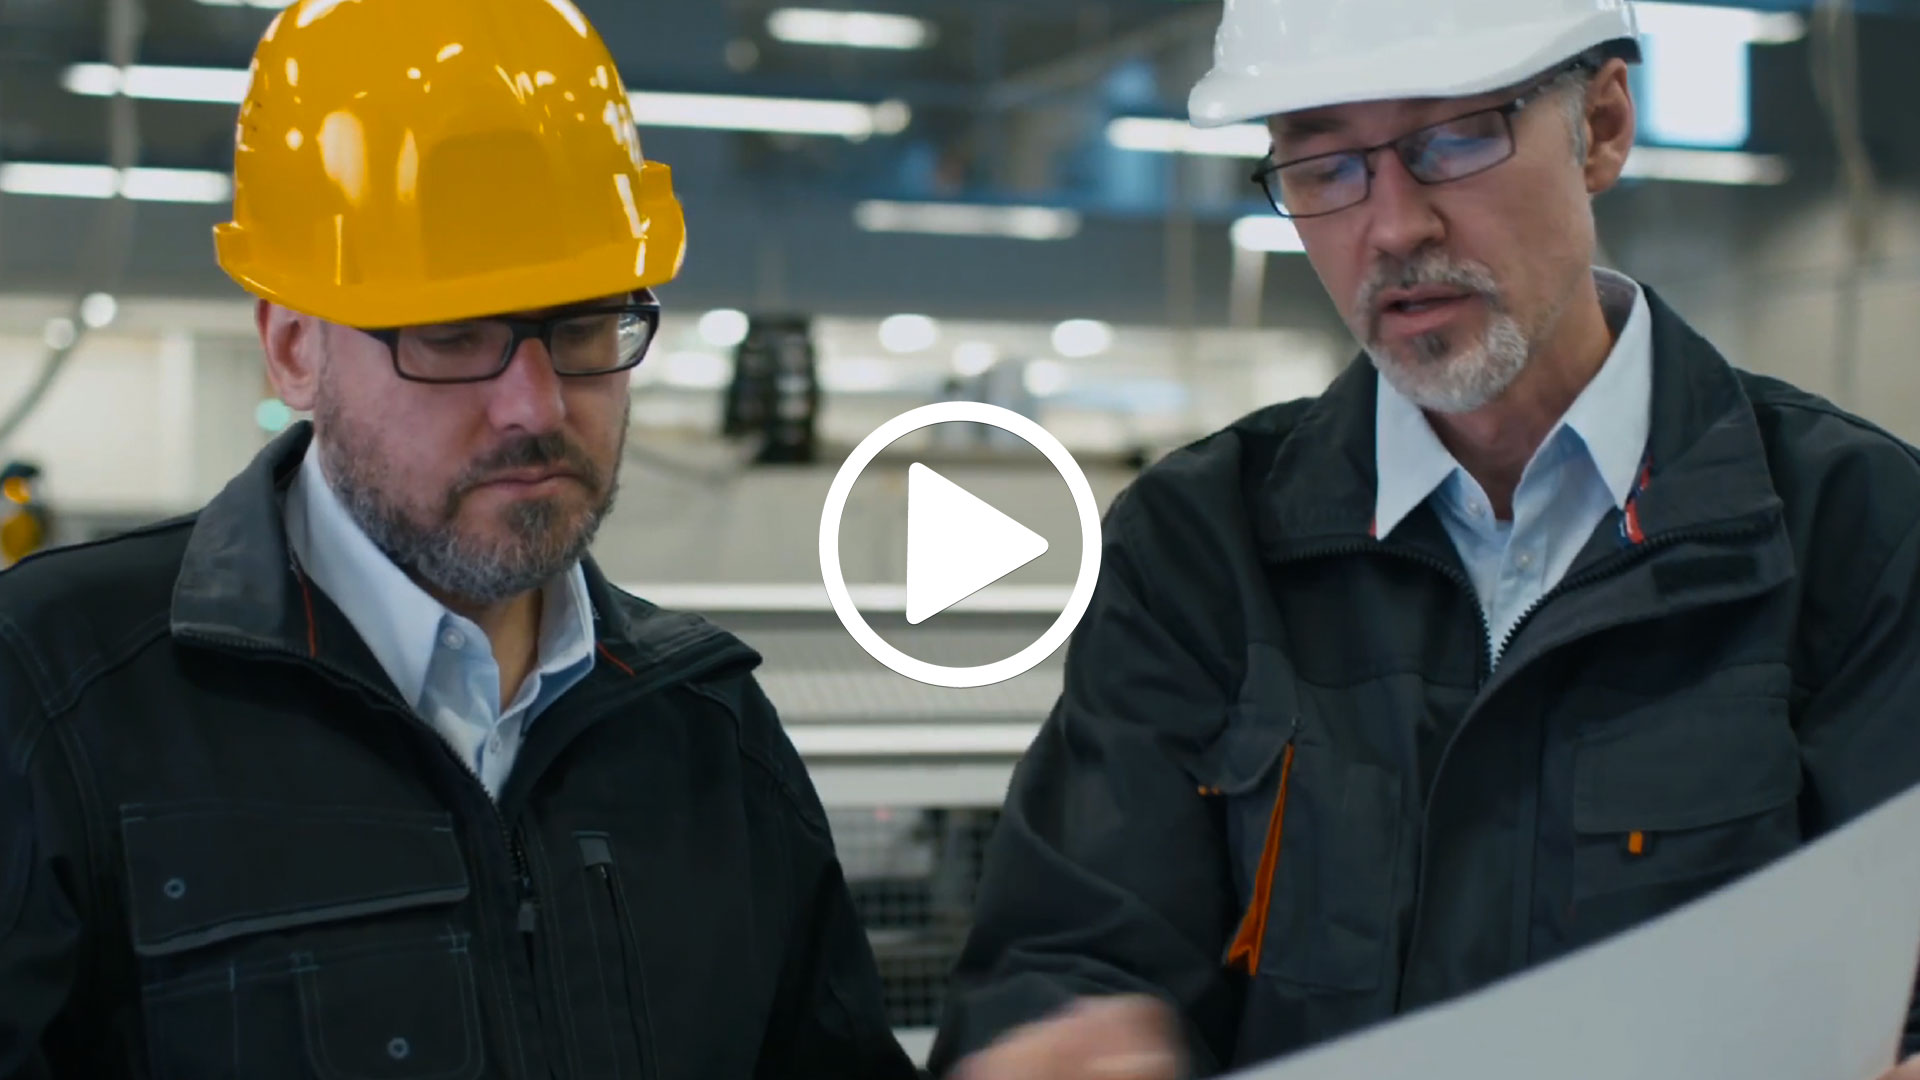 Watch our careers video for available job opening Field Support Representative in Mountain View, CA